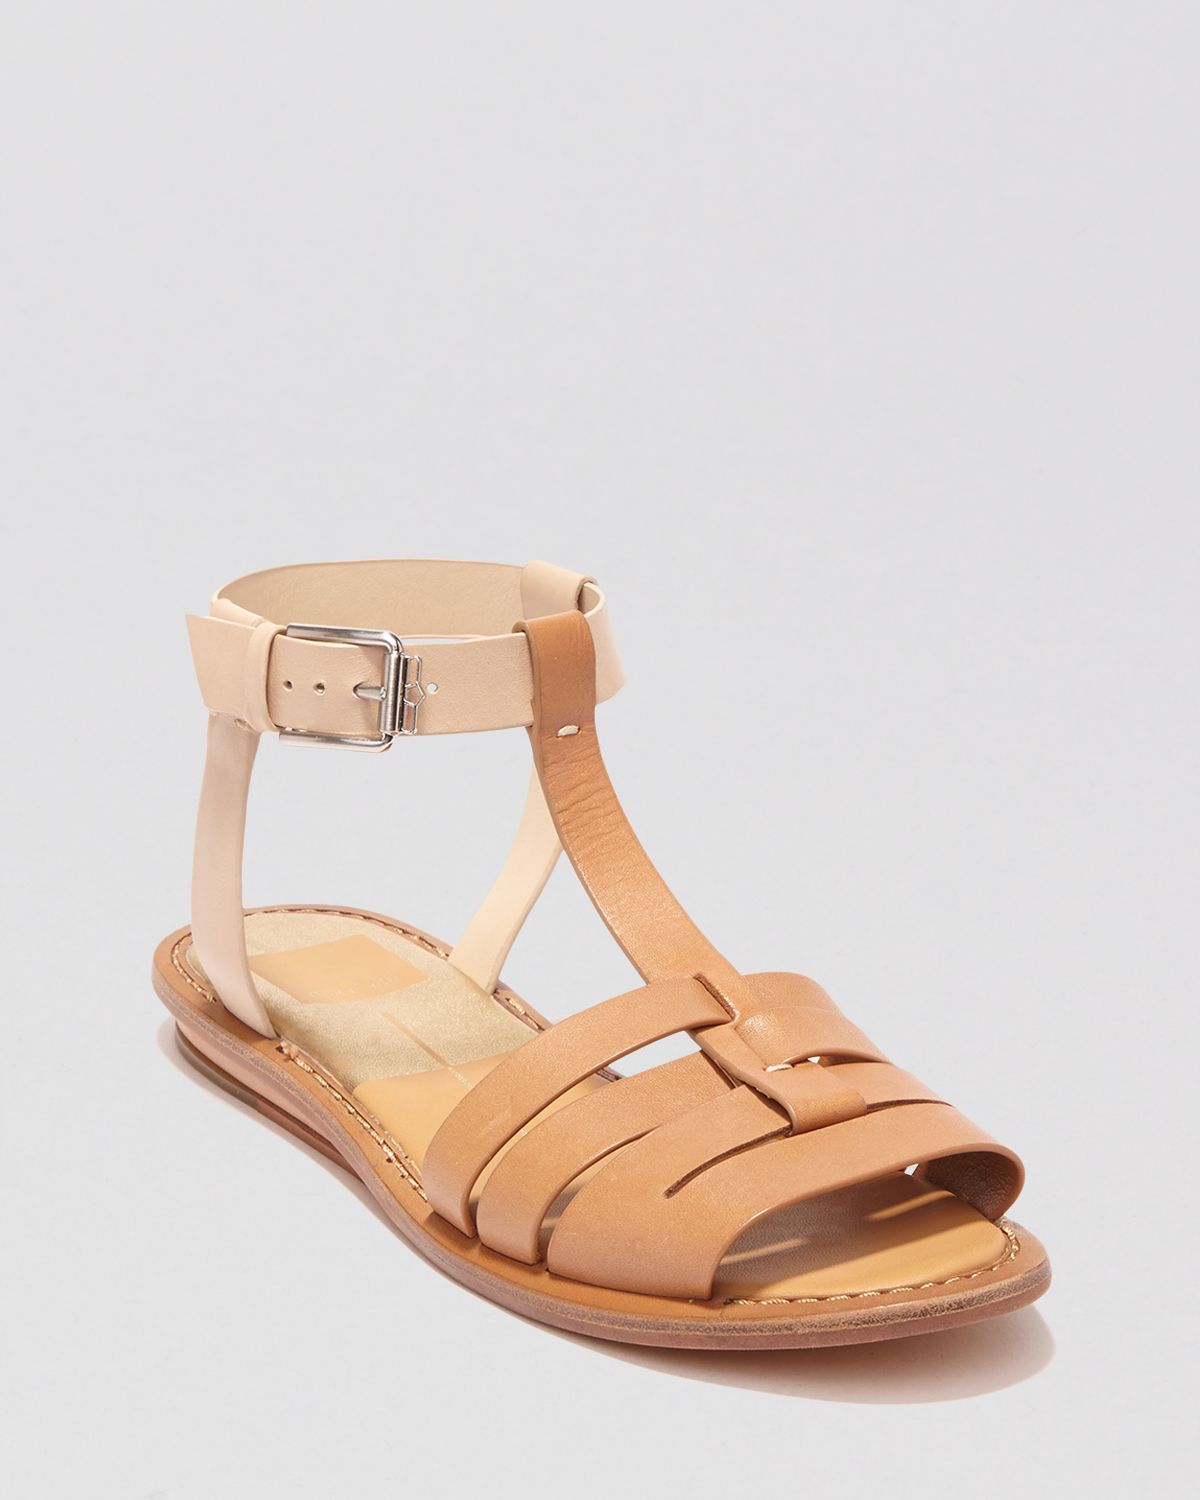 Dolce Vita Open Toe Flat Fisherman Sandals Desmonde In